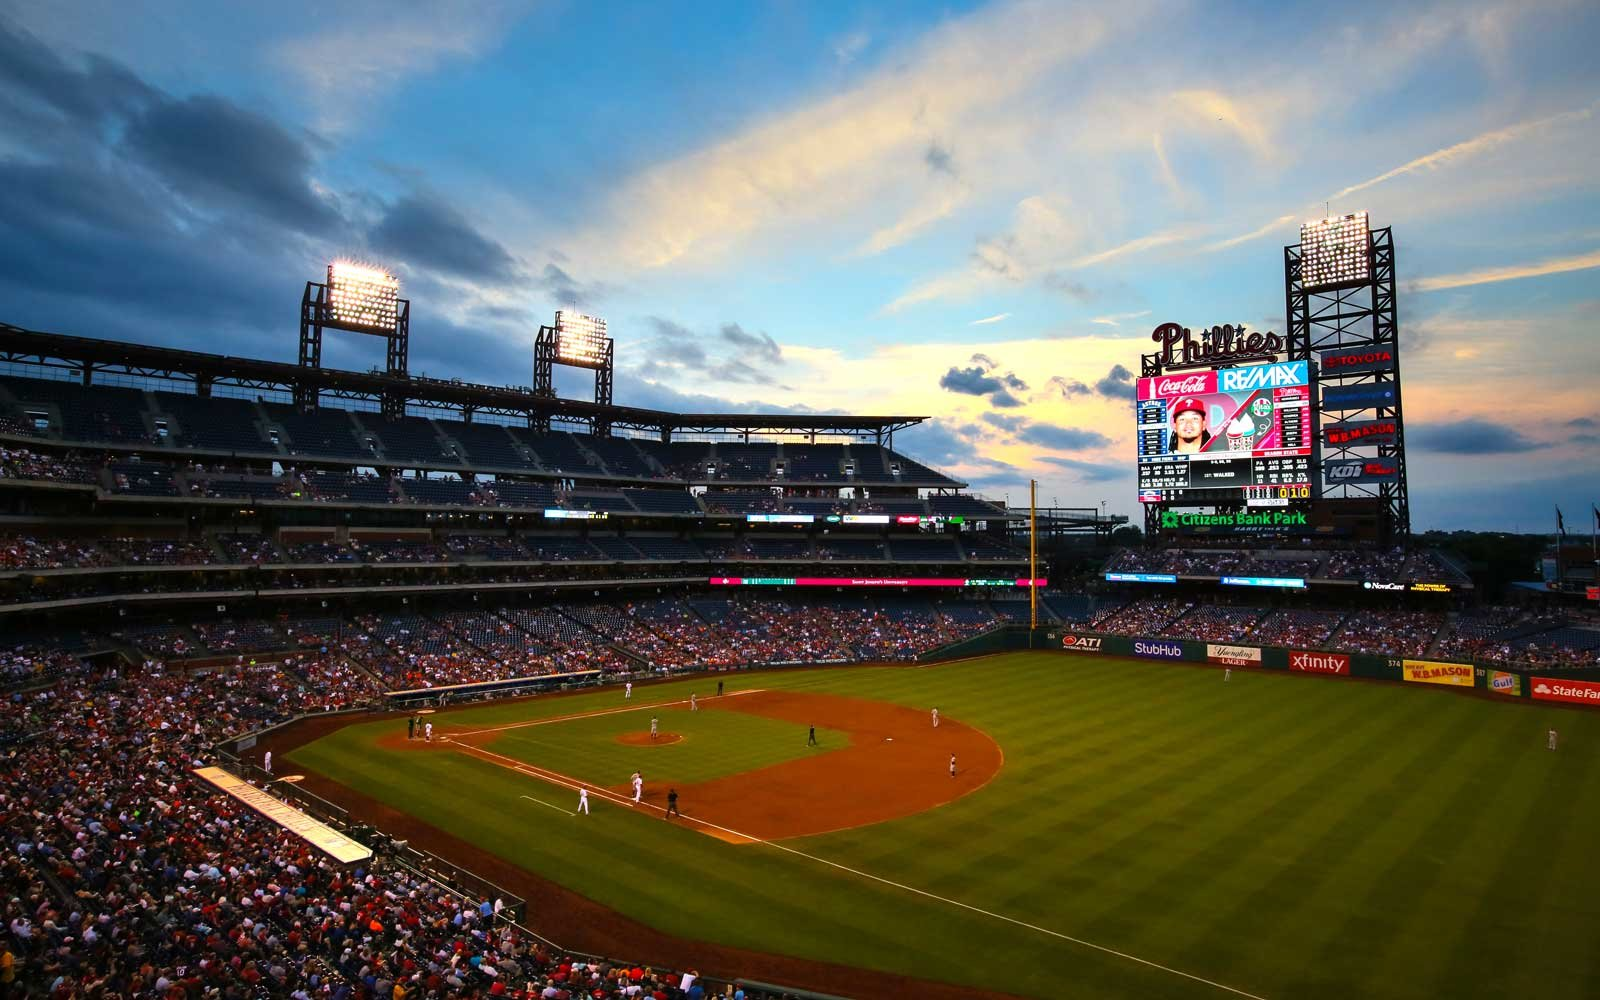 Philadelphia Phillies vs Houston Astros